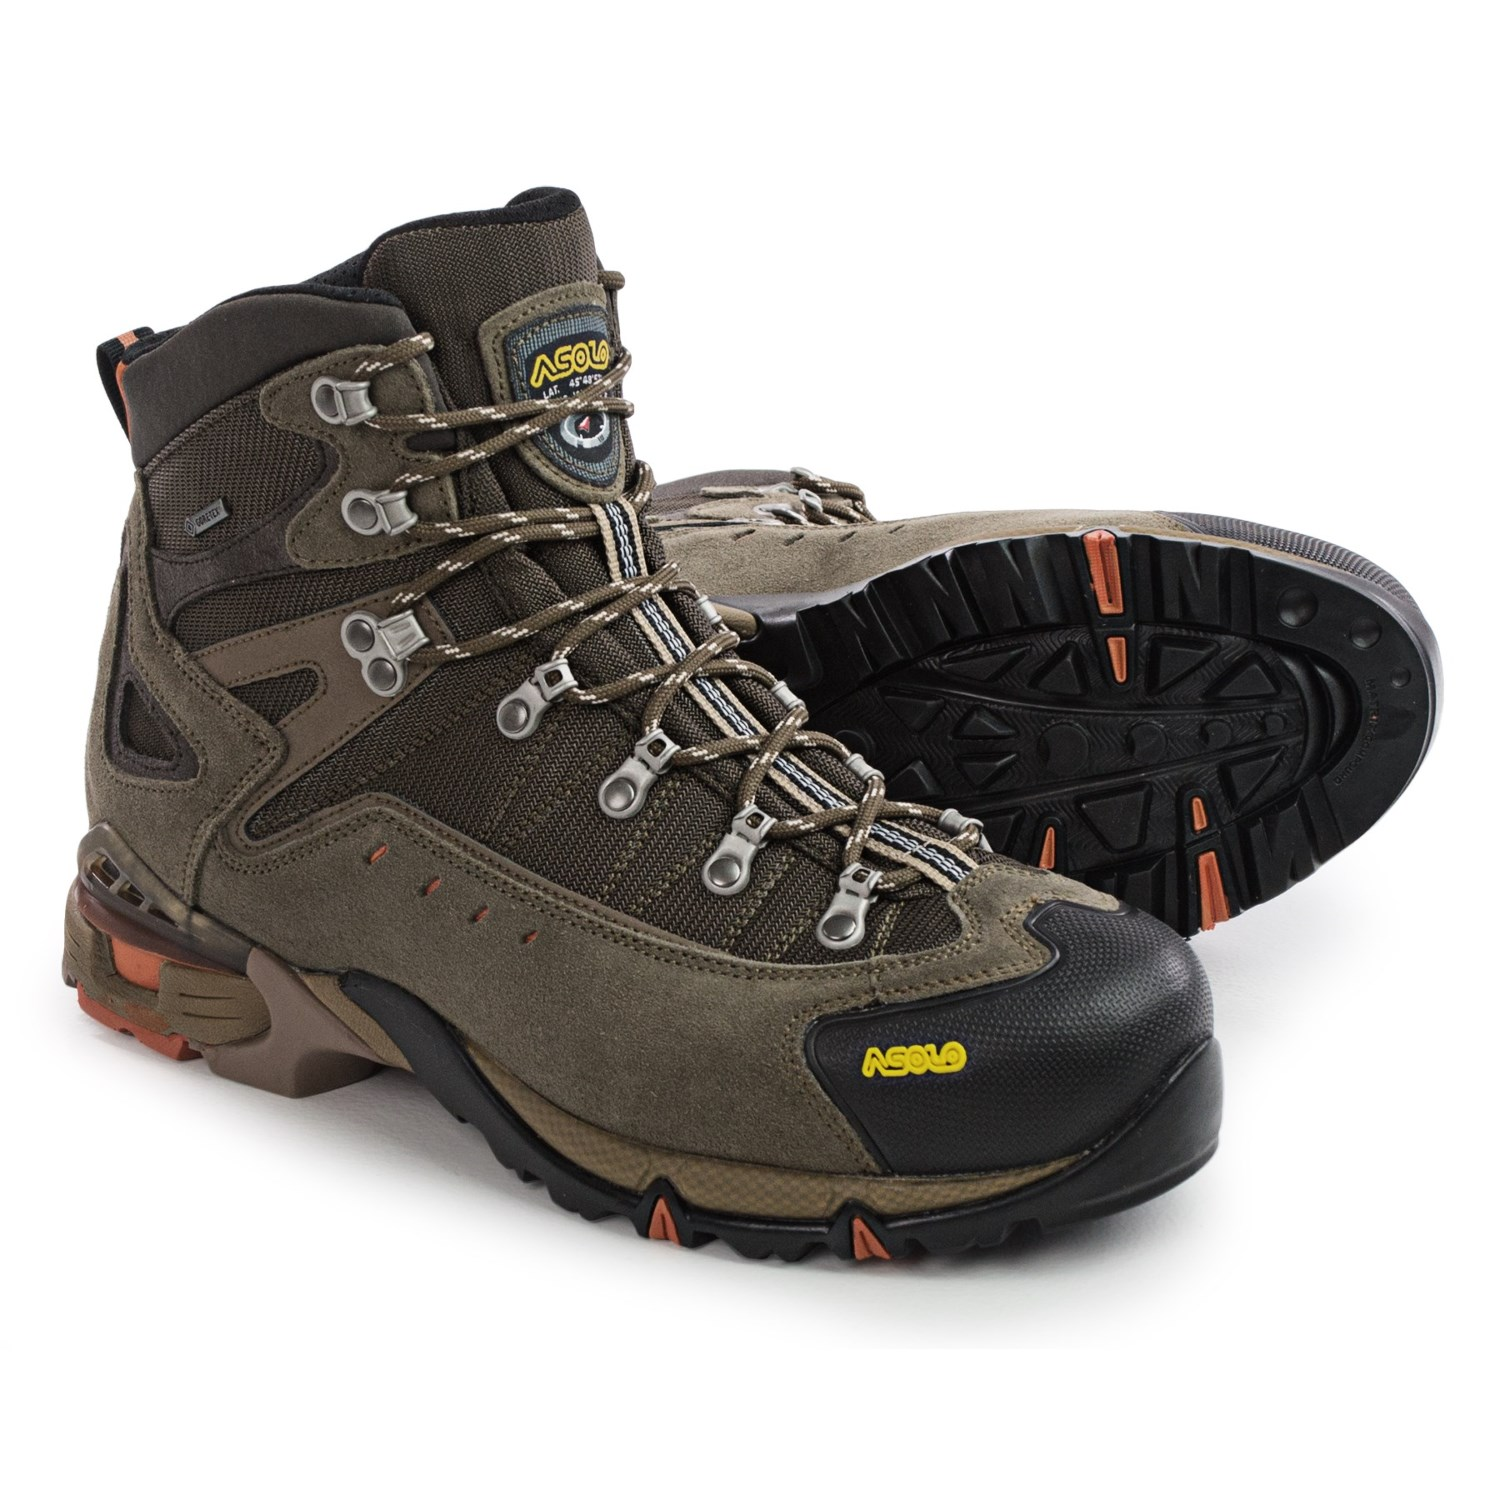 526c05bda9a Asolo Flame Gore-Tex® Hiking Boots - Waterproof (For Men)